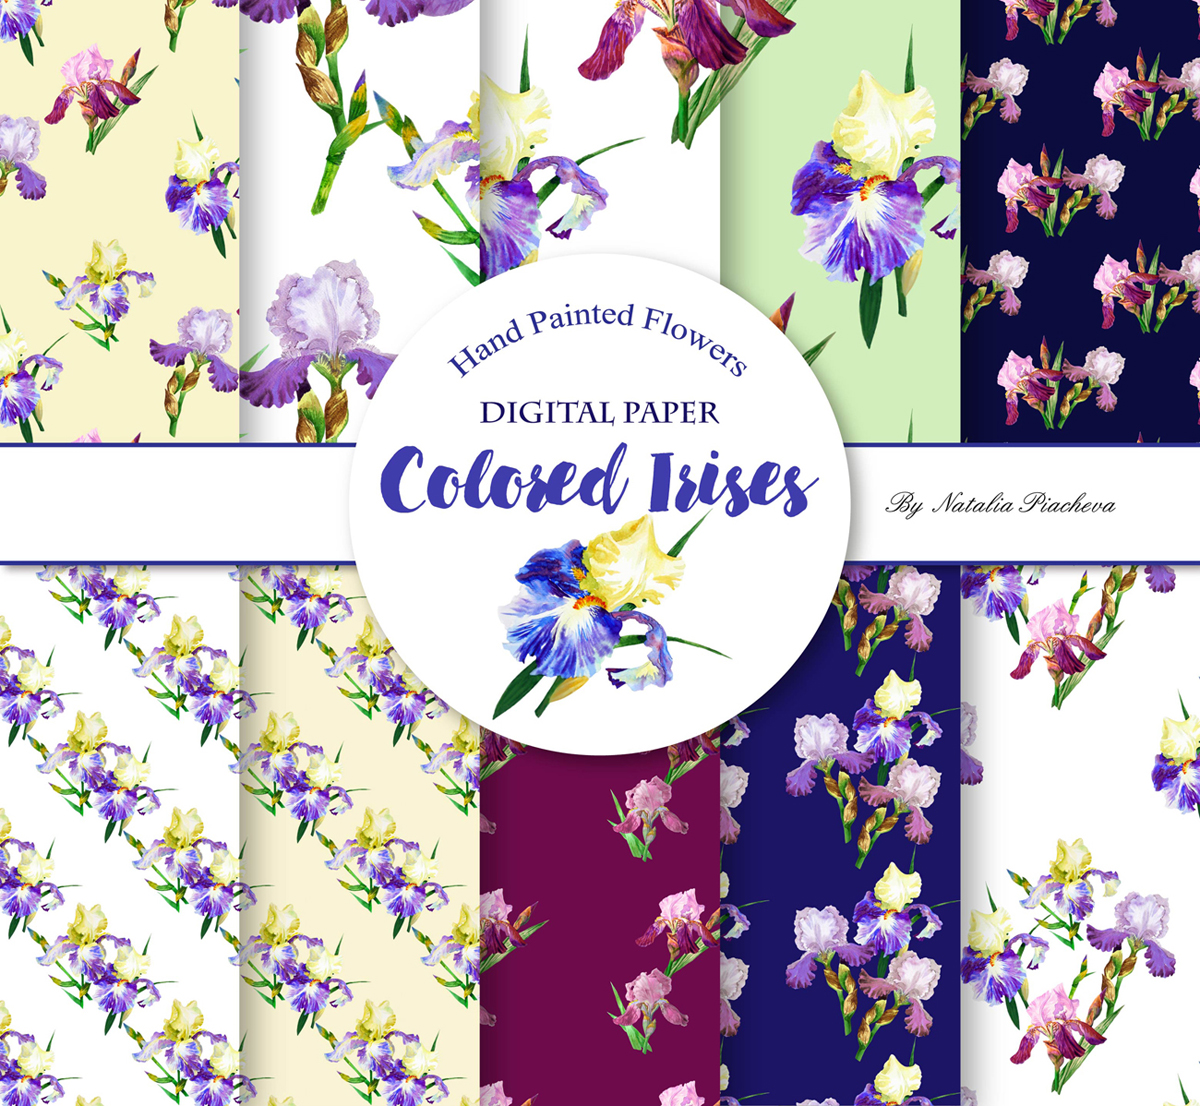 Digital Paper with Colored Irises example image 1